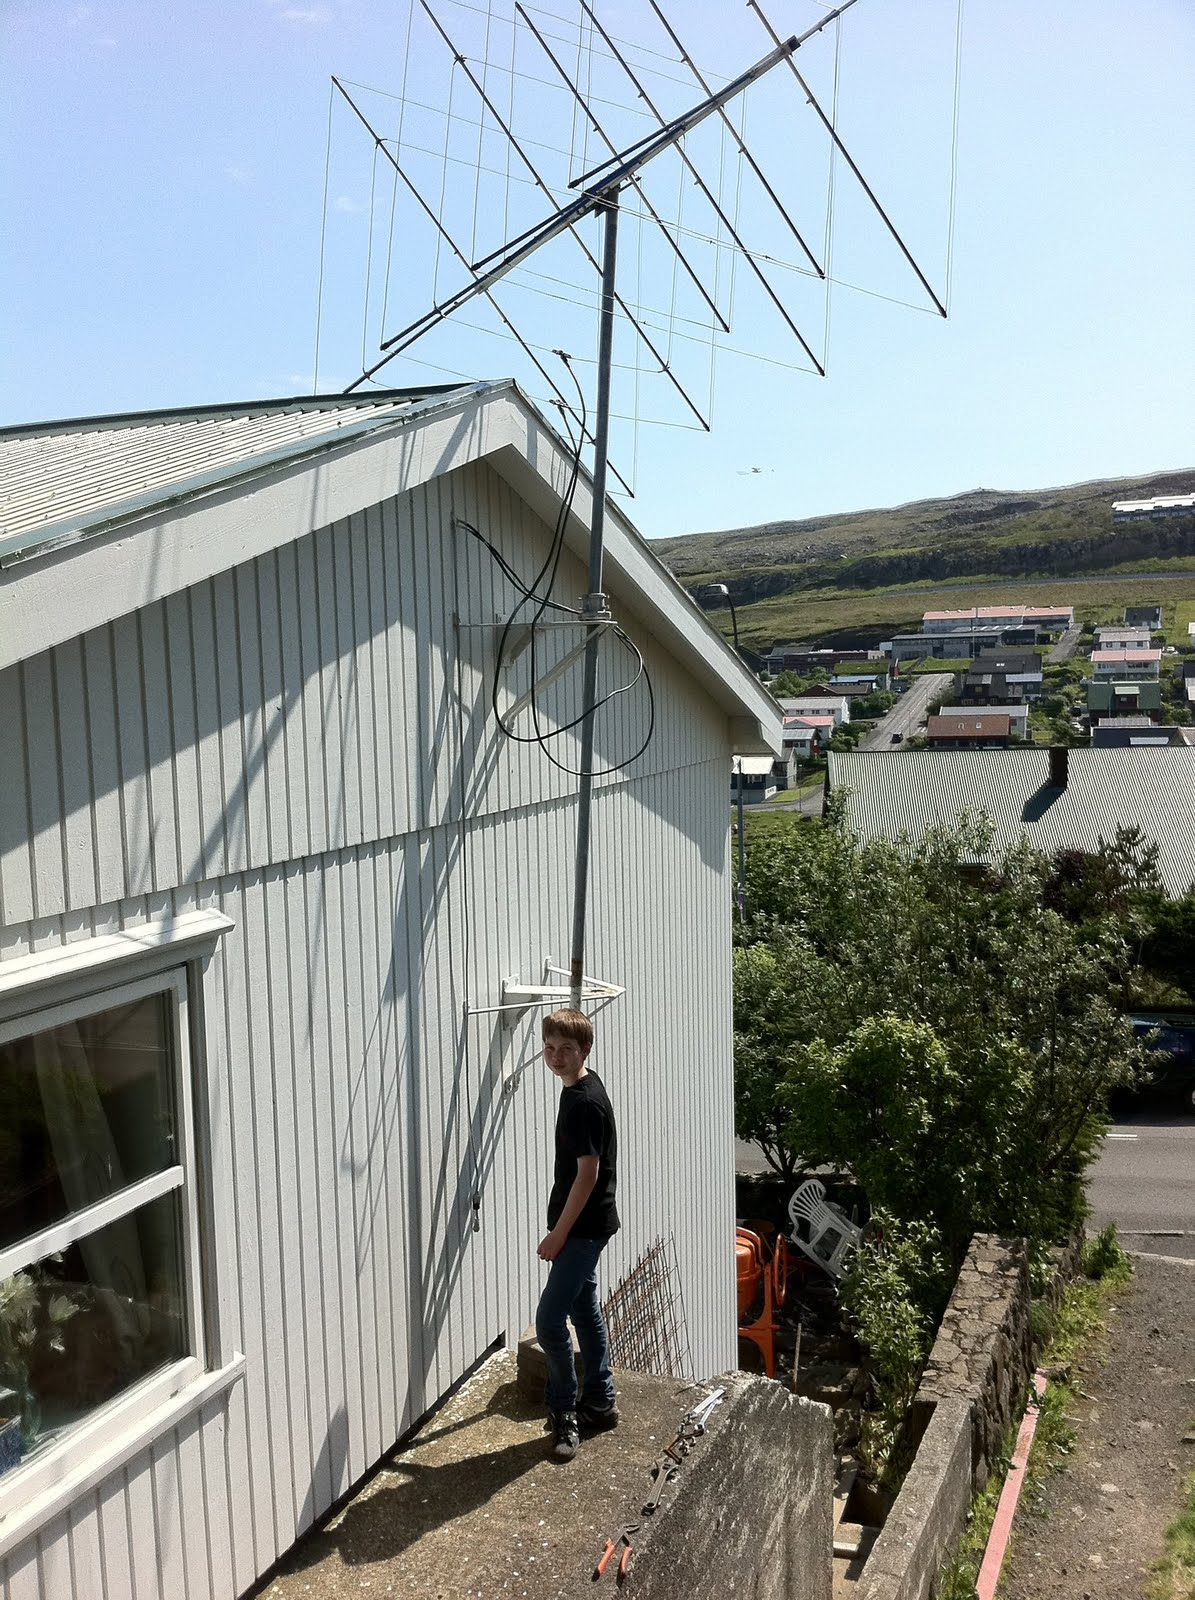 OY3JE: 4 & 6 meter Quad antenna is now in the new tower